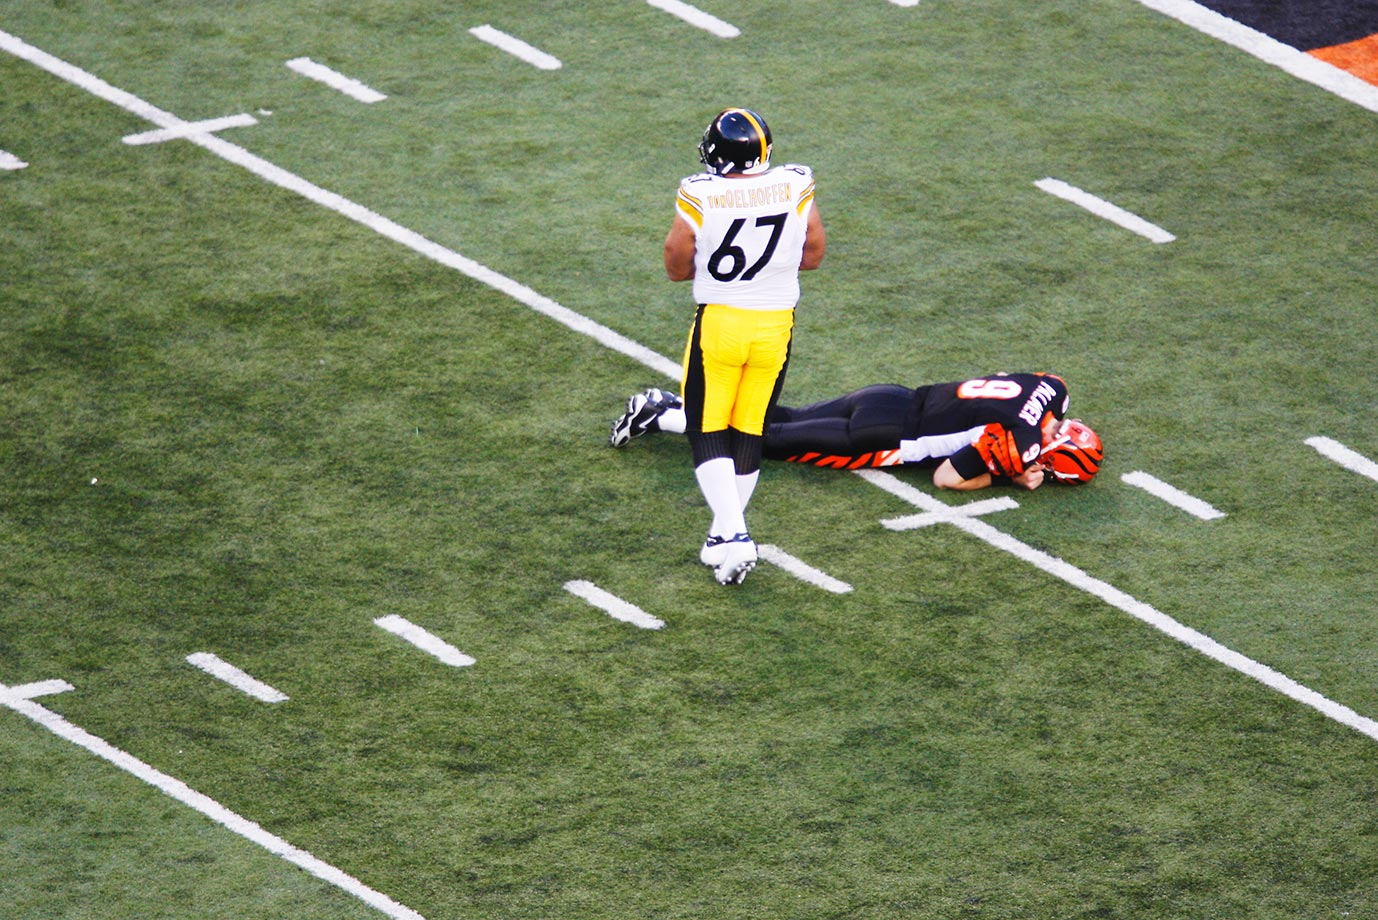 With Palmer down, the Bengals lost the playoff game 31-17 and the Steelers went on to win the Super Bowl. The NFL instituted the Carson Palmer rule the following season, penalizing defenders for hitting a passer at or below the knee unless they were blocked into him.